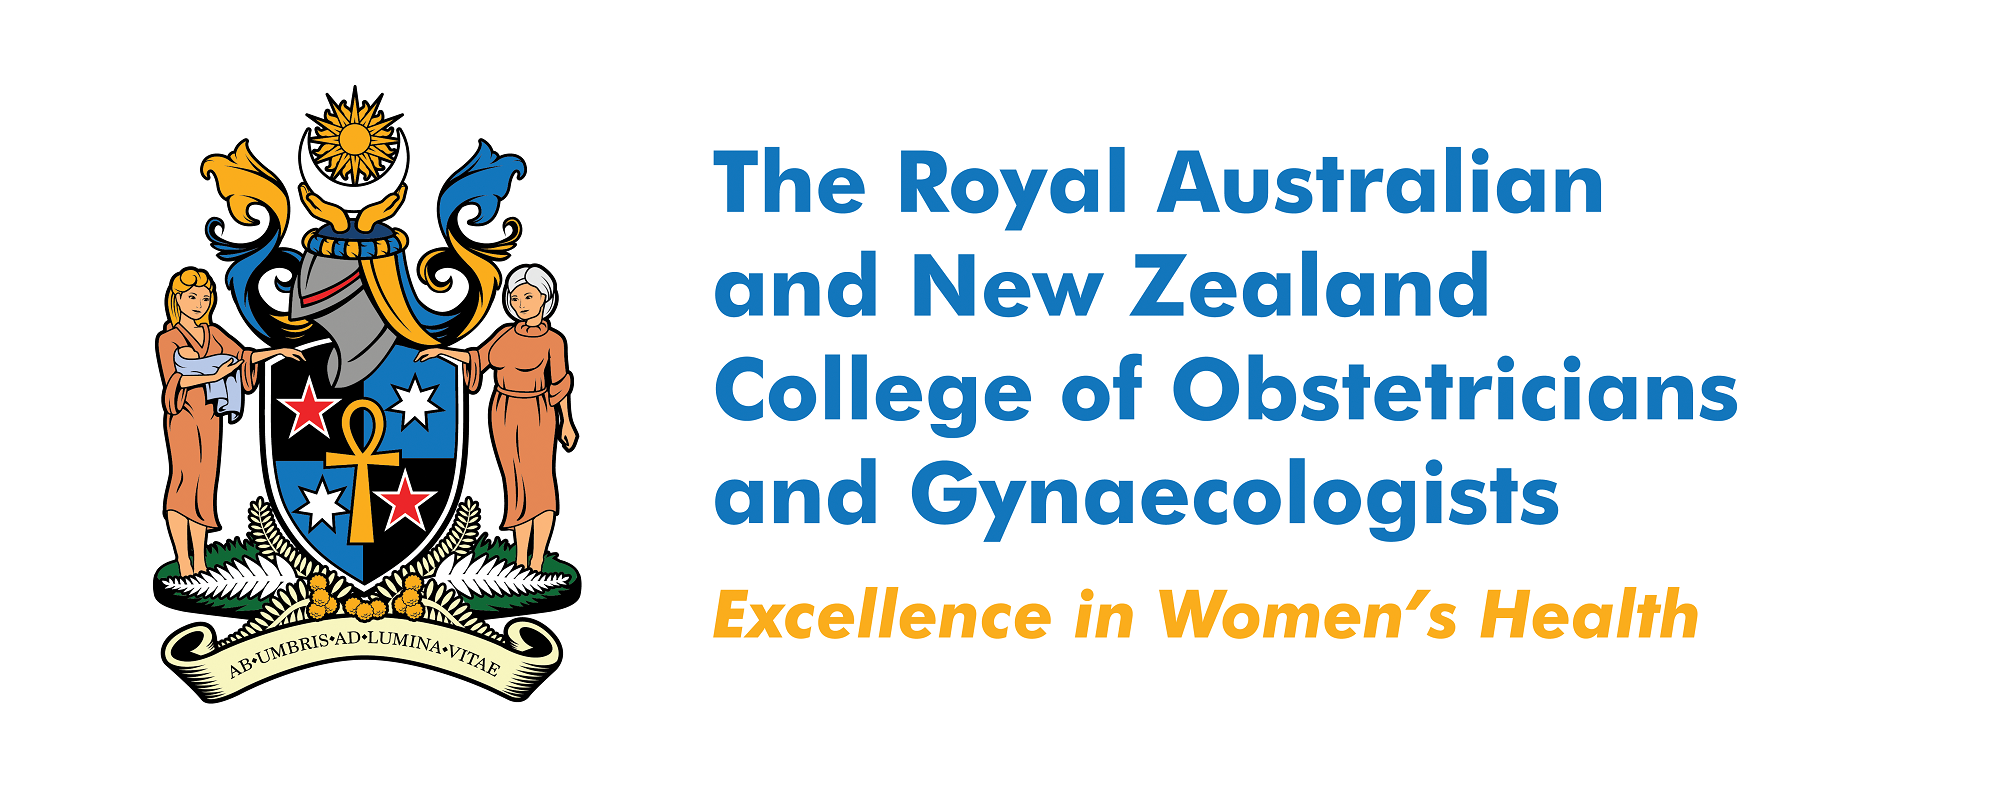 Logo of The Royal Australian and New Zealand College of Obstetricians and Gynaecologists (RANZCOG)